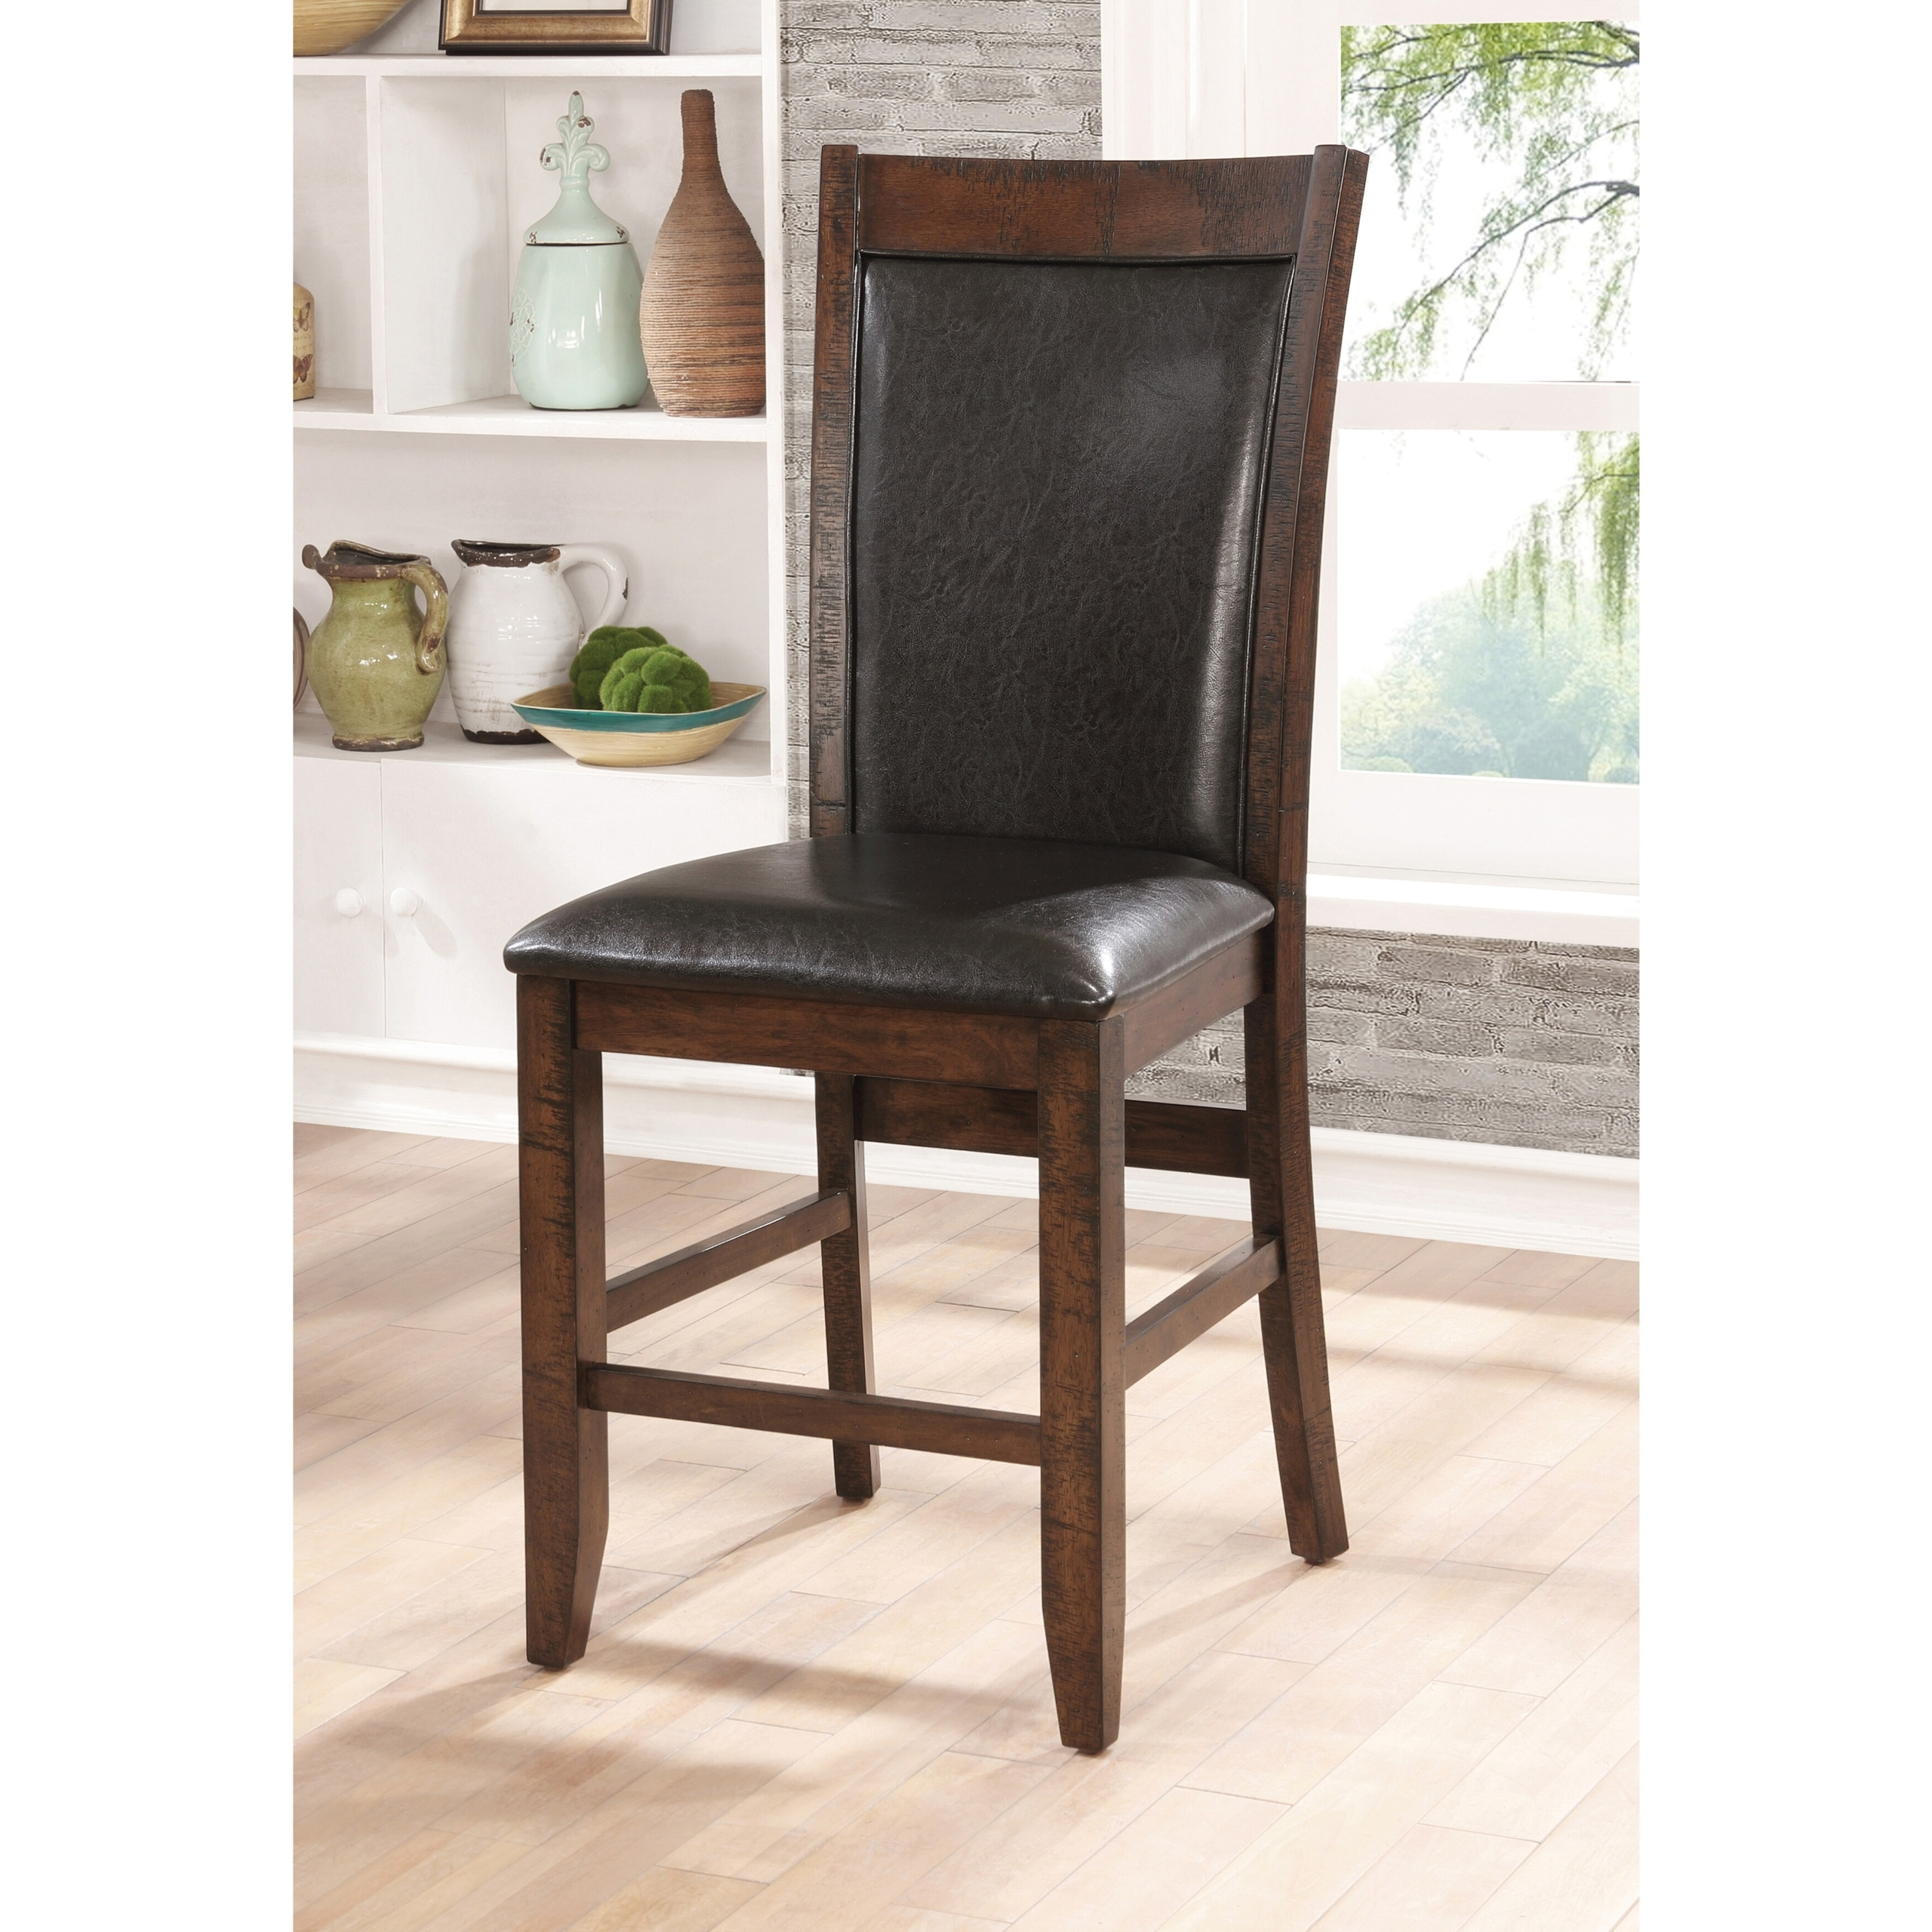 Counter Height Dining Chairs You Ll Love In 2021 Visualhunt